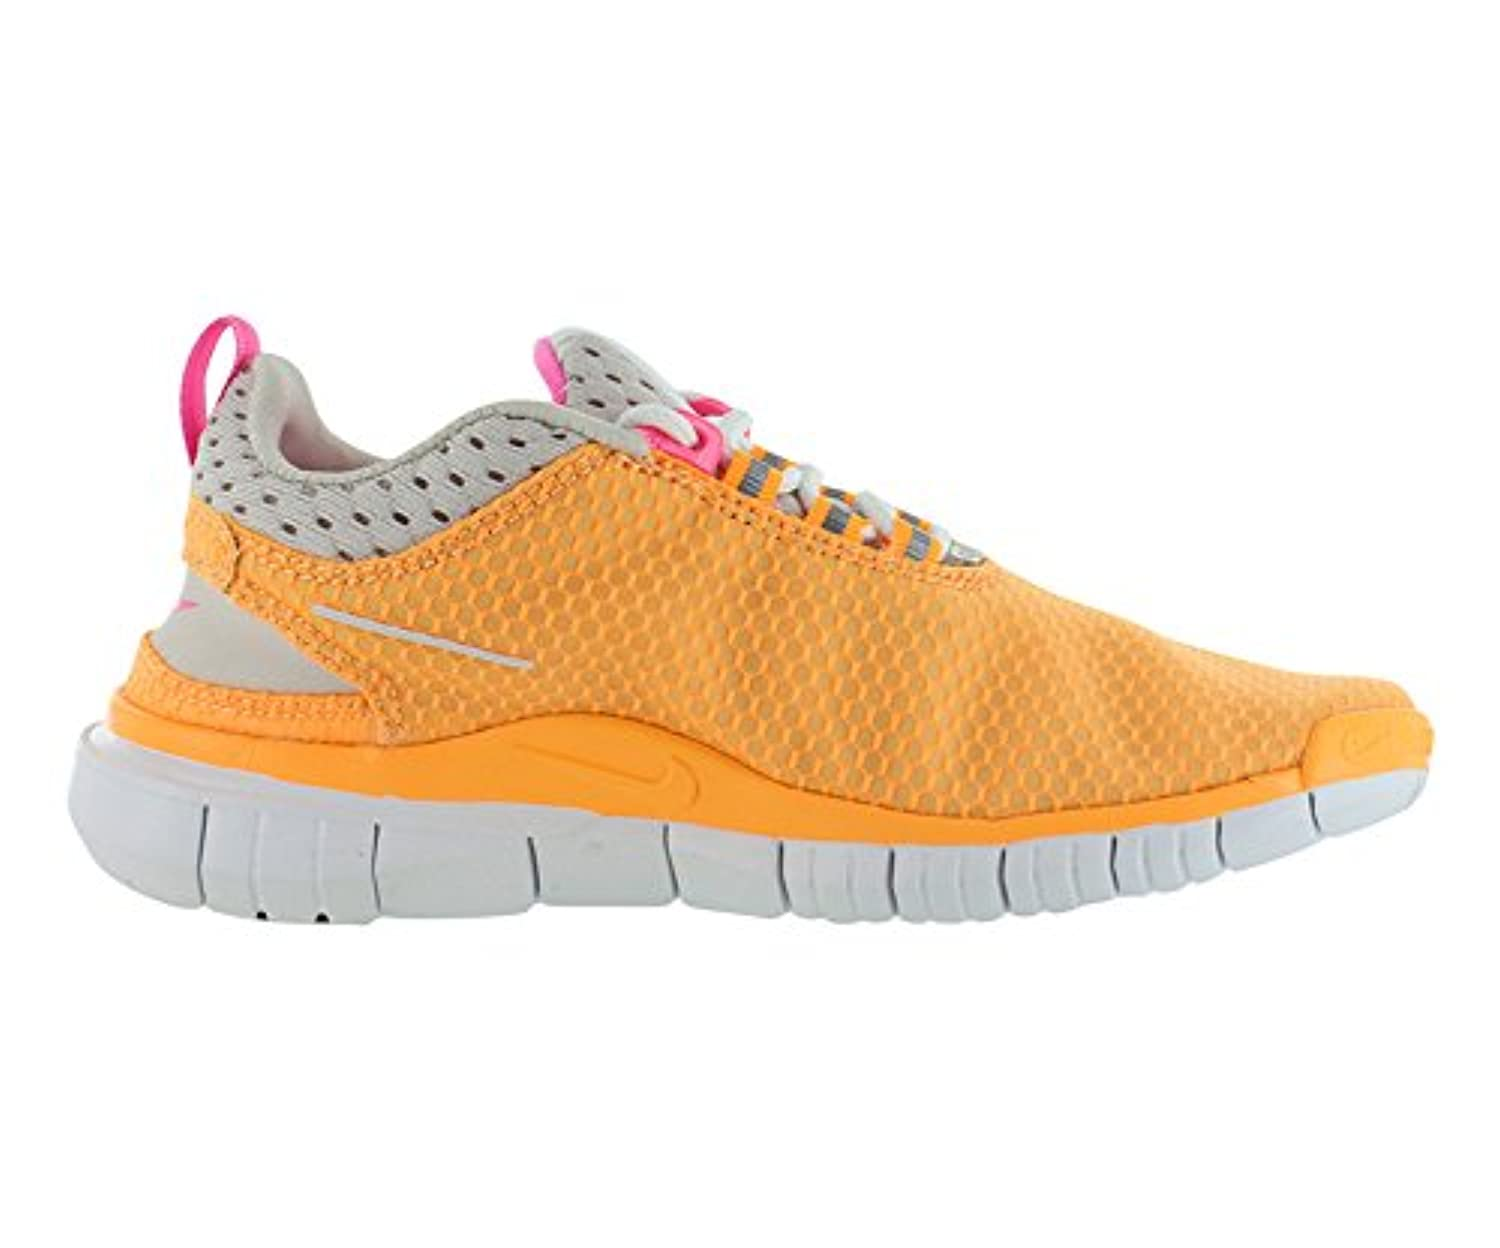 ... Nike Womens Free OG '14 BR Running Shoes Atomic Mango/Metallic Silver/ Pink ...